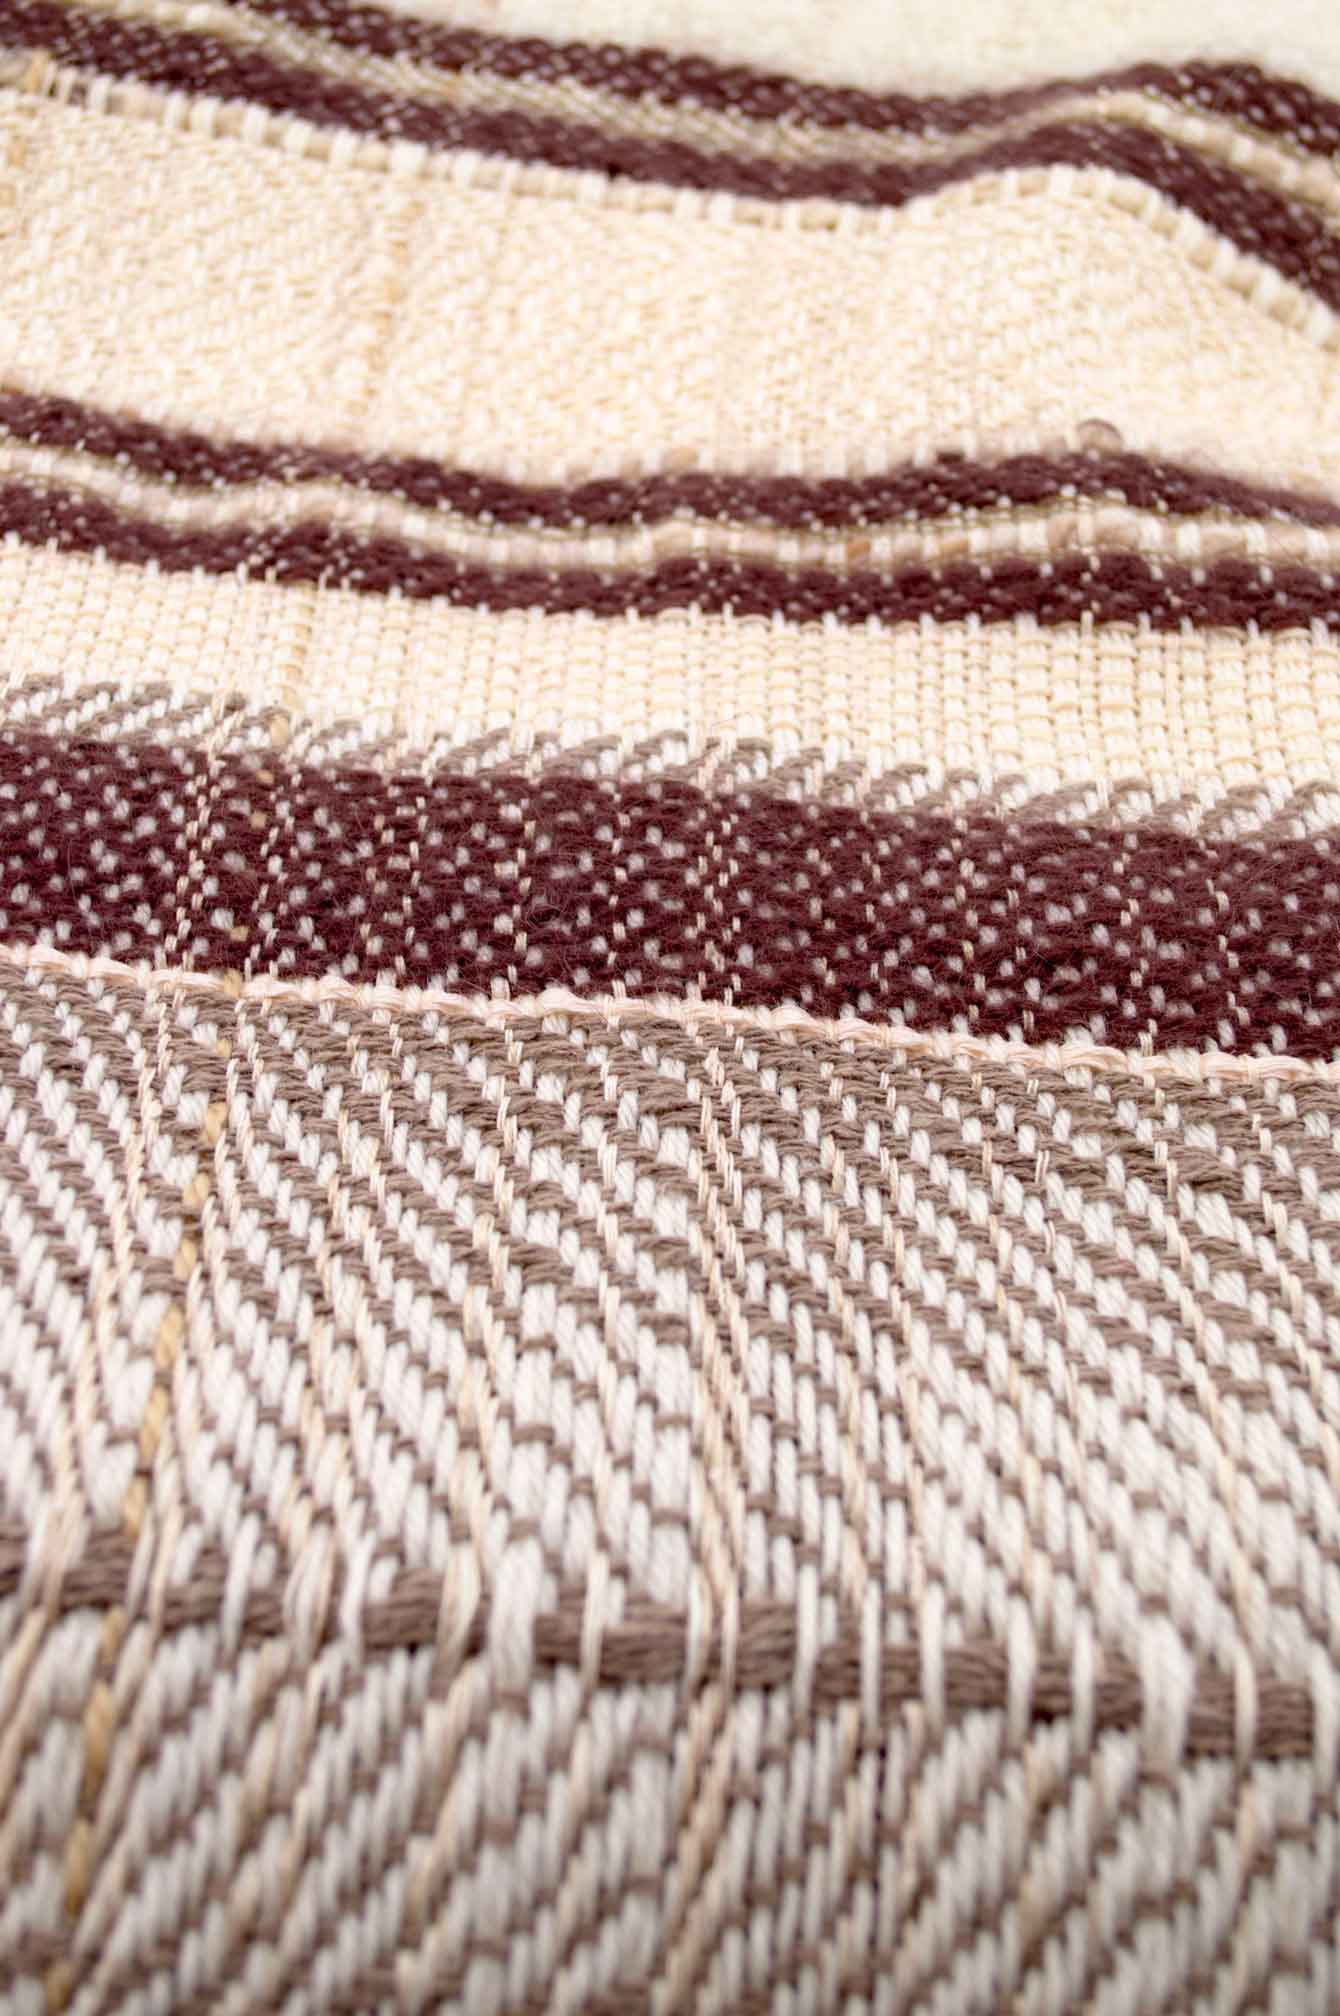 Throw blanket created with brown and taupe angora wood, pinky beige silk floss, silk, cashmere, country wool, ecru wool, and beige cotton threads slipped into the plaid.   Technique: Throw blanket hand-woven in a traditional way on non-mechanical looms in the 7th arrondissement of Paris in France.  Finishes: Right edge. Double stitching.  Size: 145 x 180 cm.  Single piece / 1 copy only.